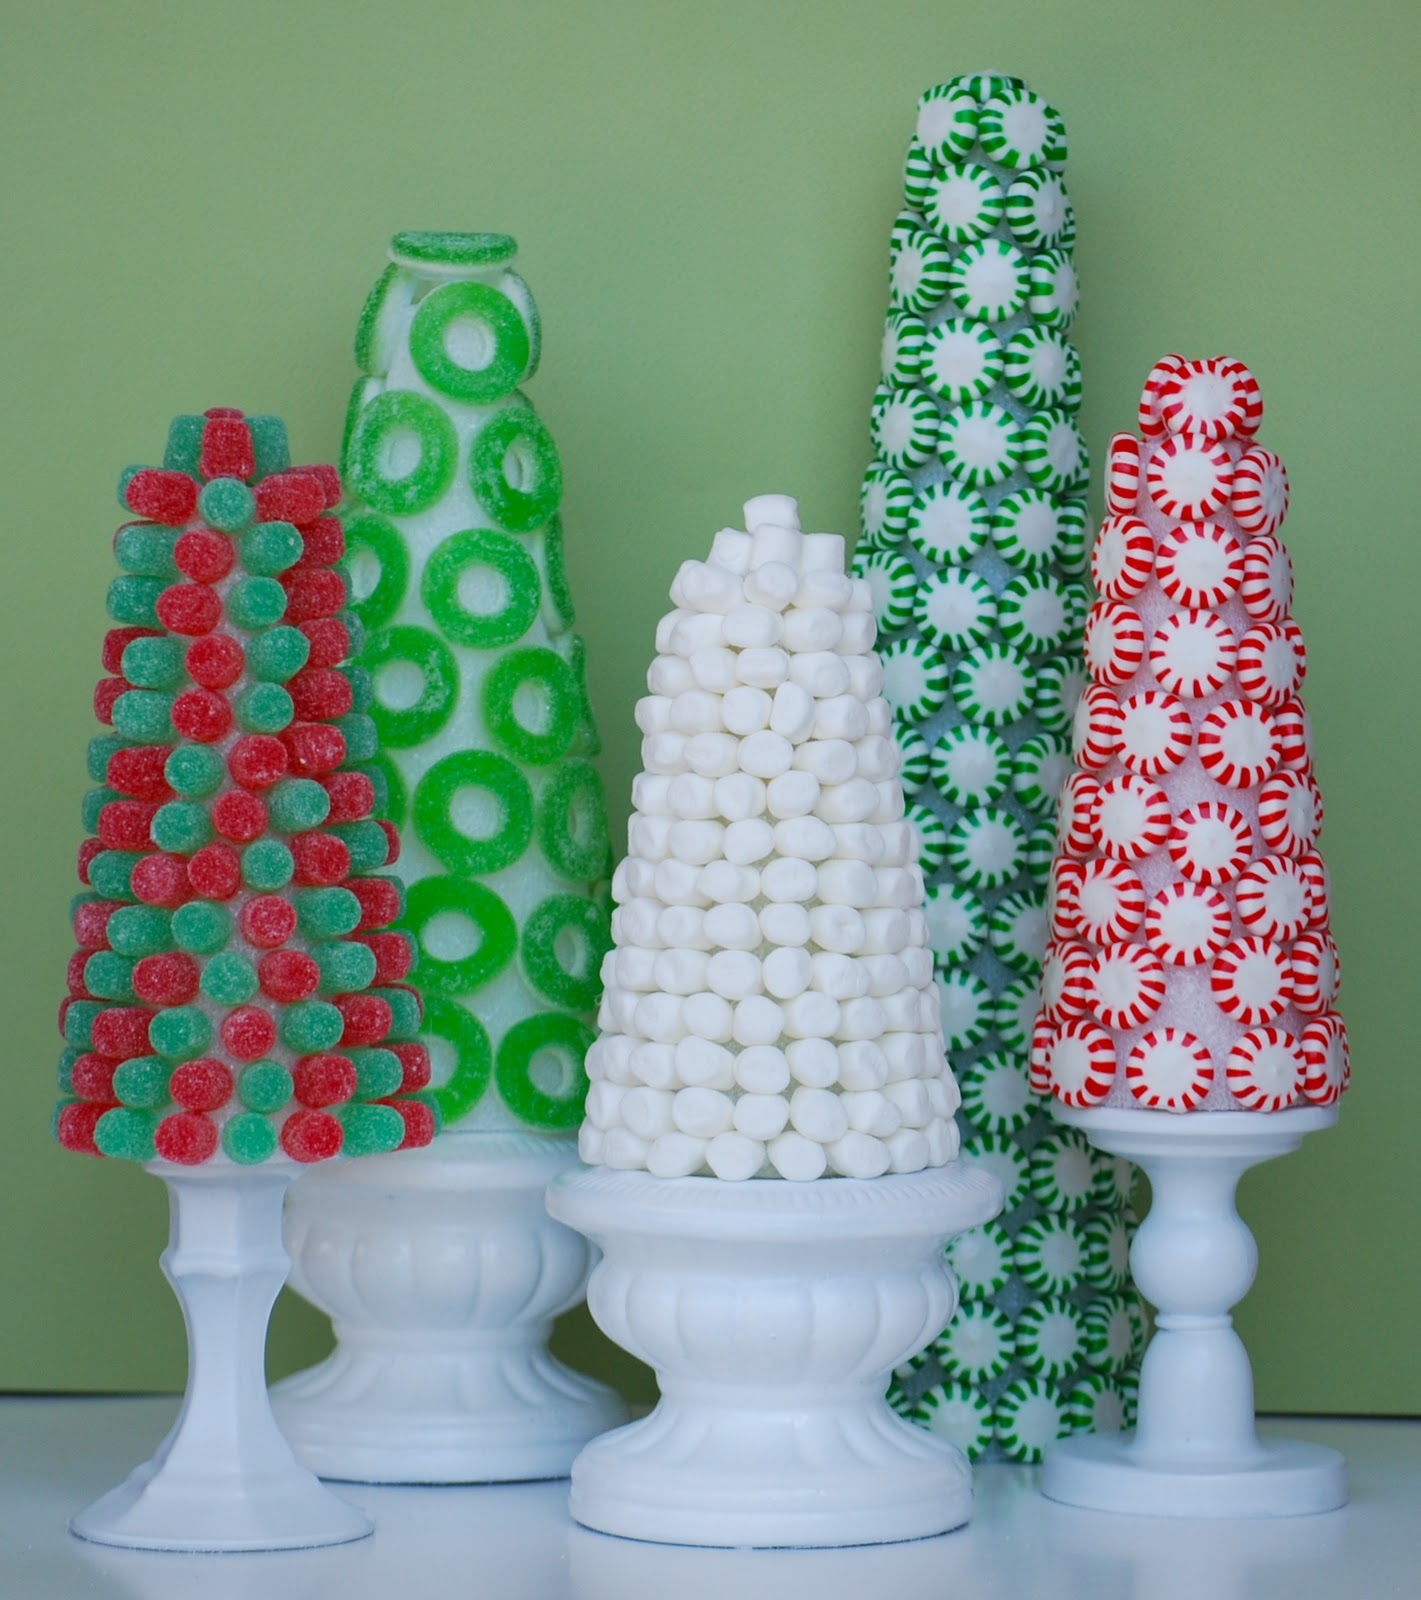 christmas candy trees my grandmother used to have gumdrop trees similar to these at christmas every year and i made my first ones nearly 8 years ago when